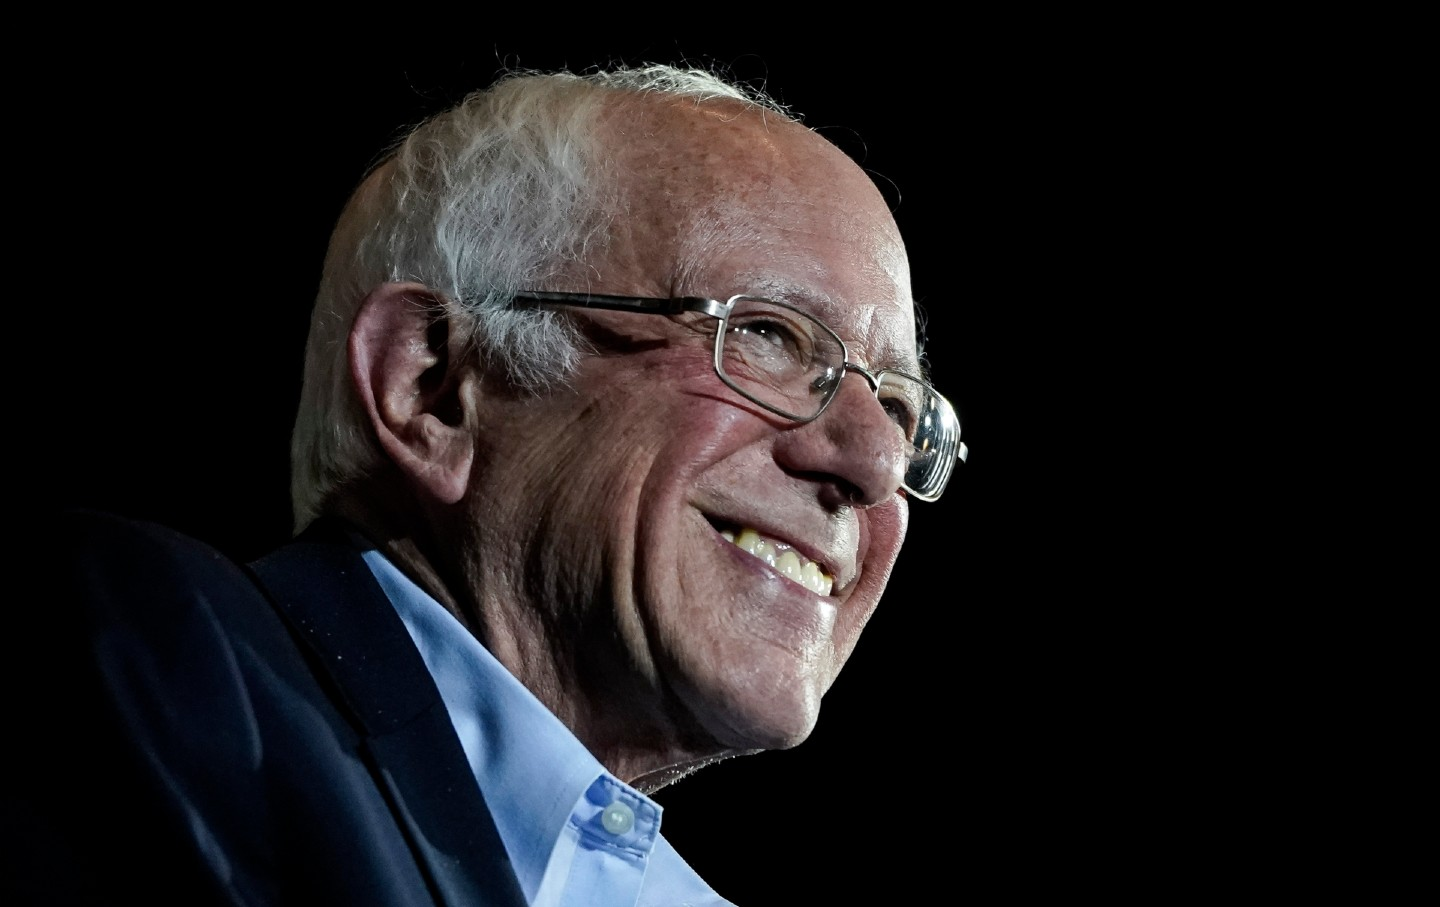 Close-up shot of Bernie Sanders smiling.